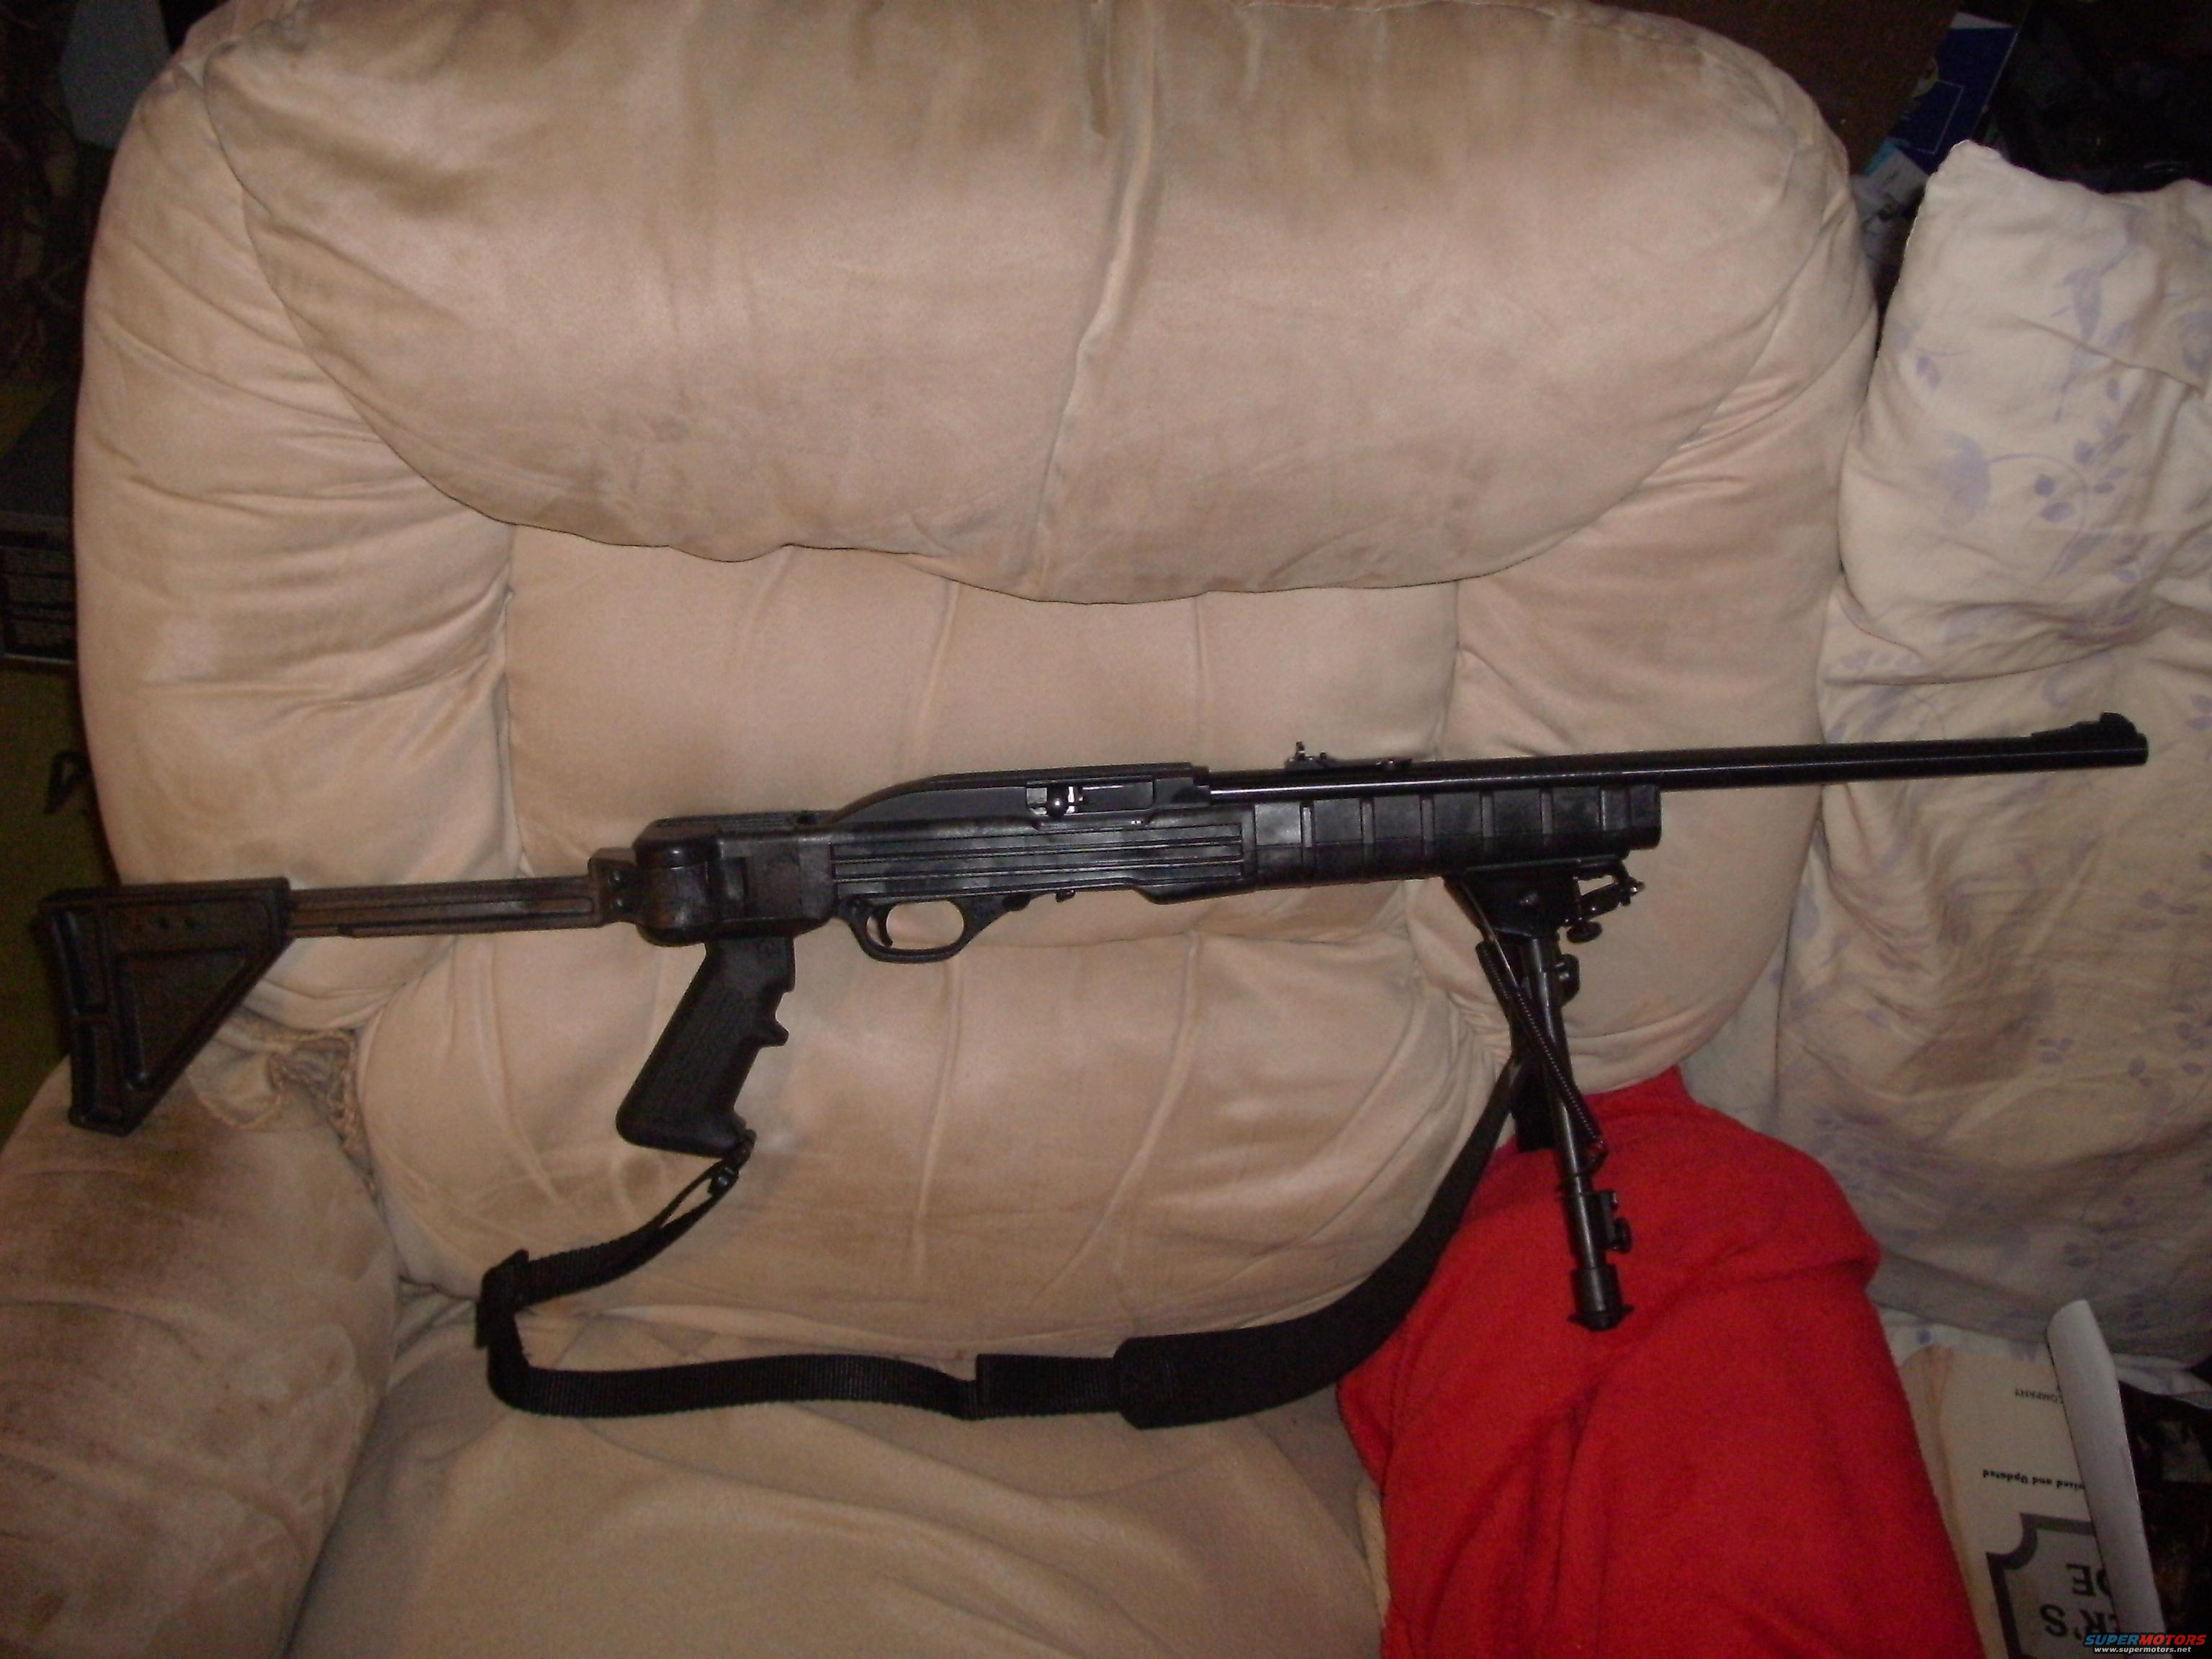 Rifle 22 worth it or not? - .22 Rifle/Rimfire Discussion